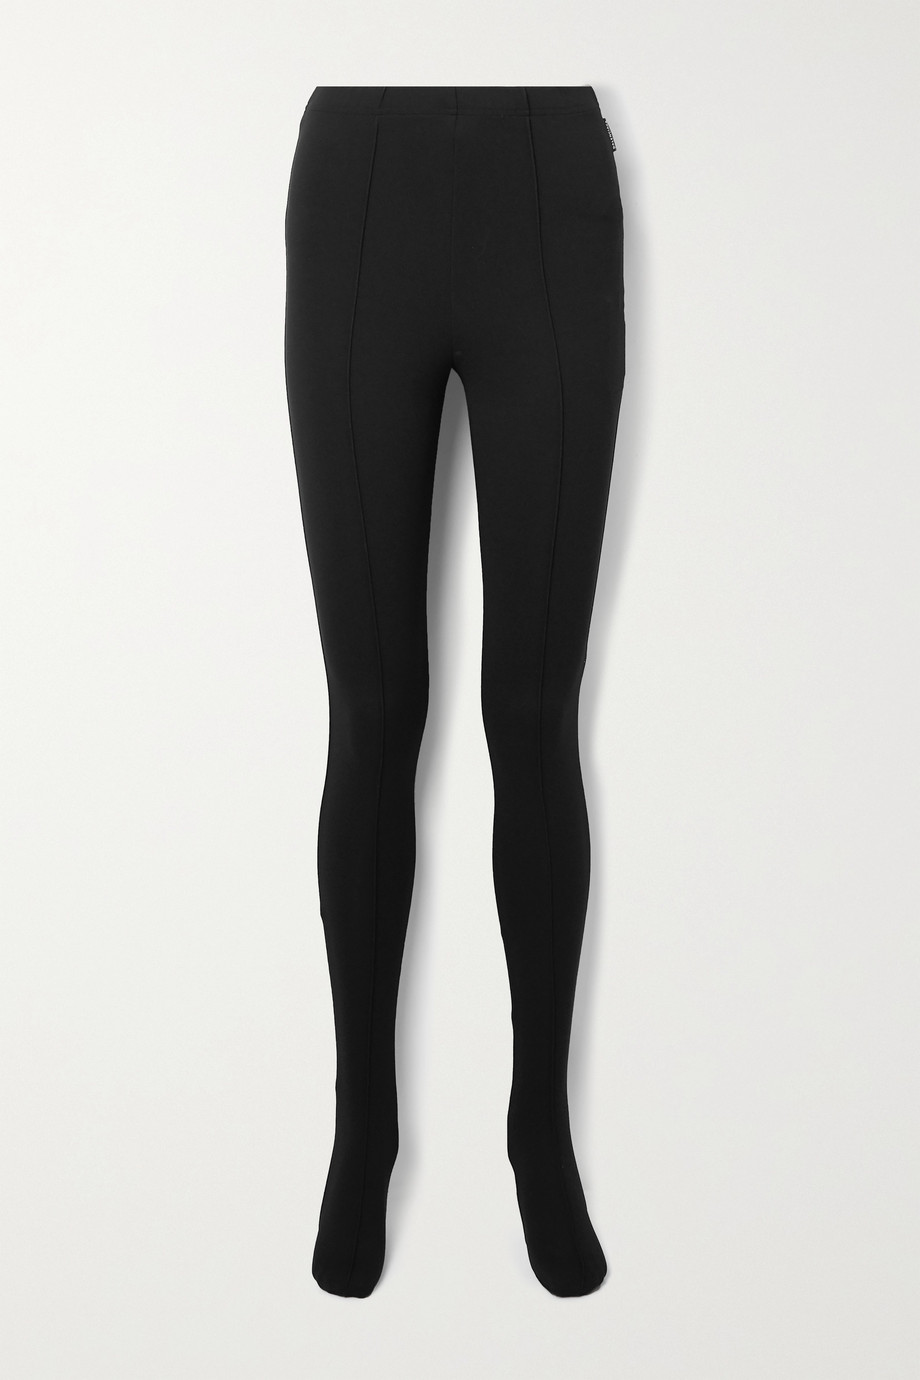 Balenciaga Stretch-ponte leggings